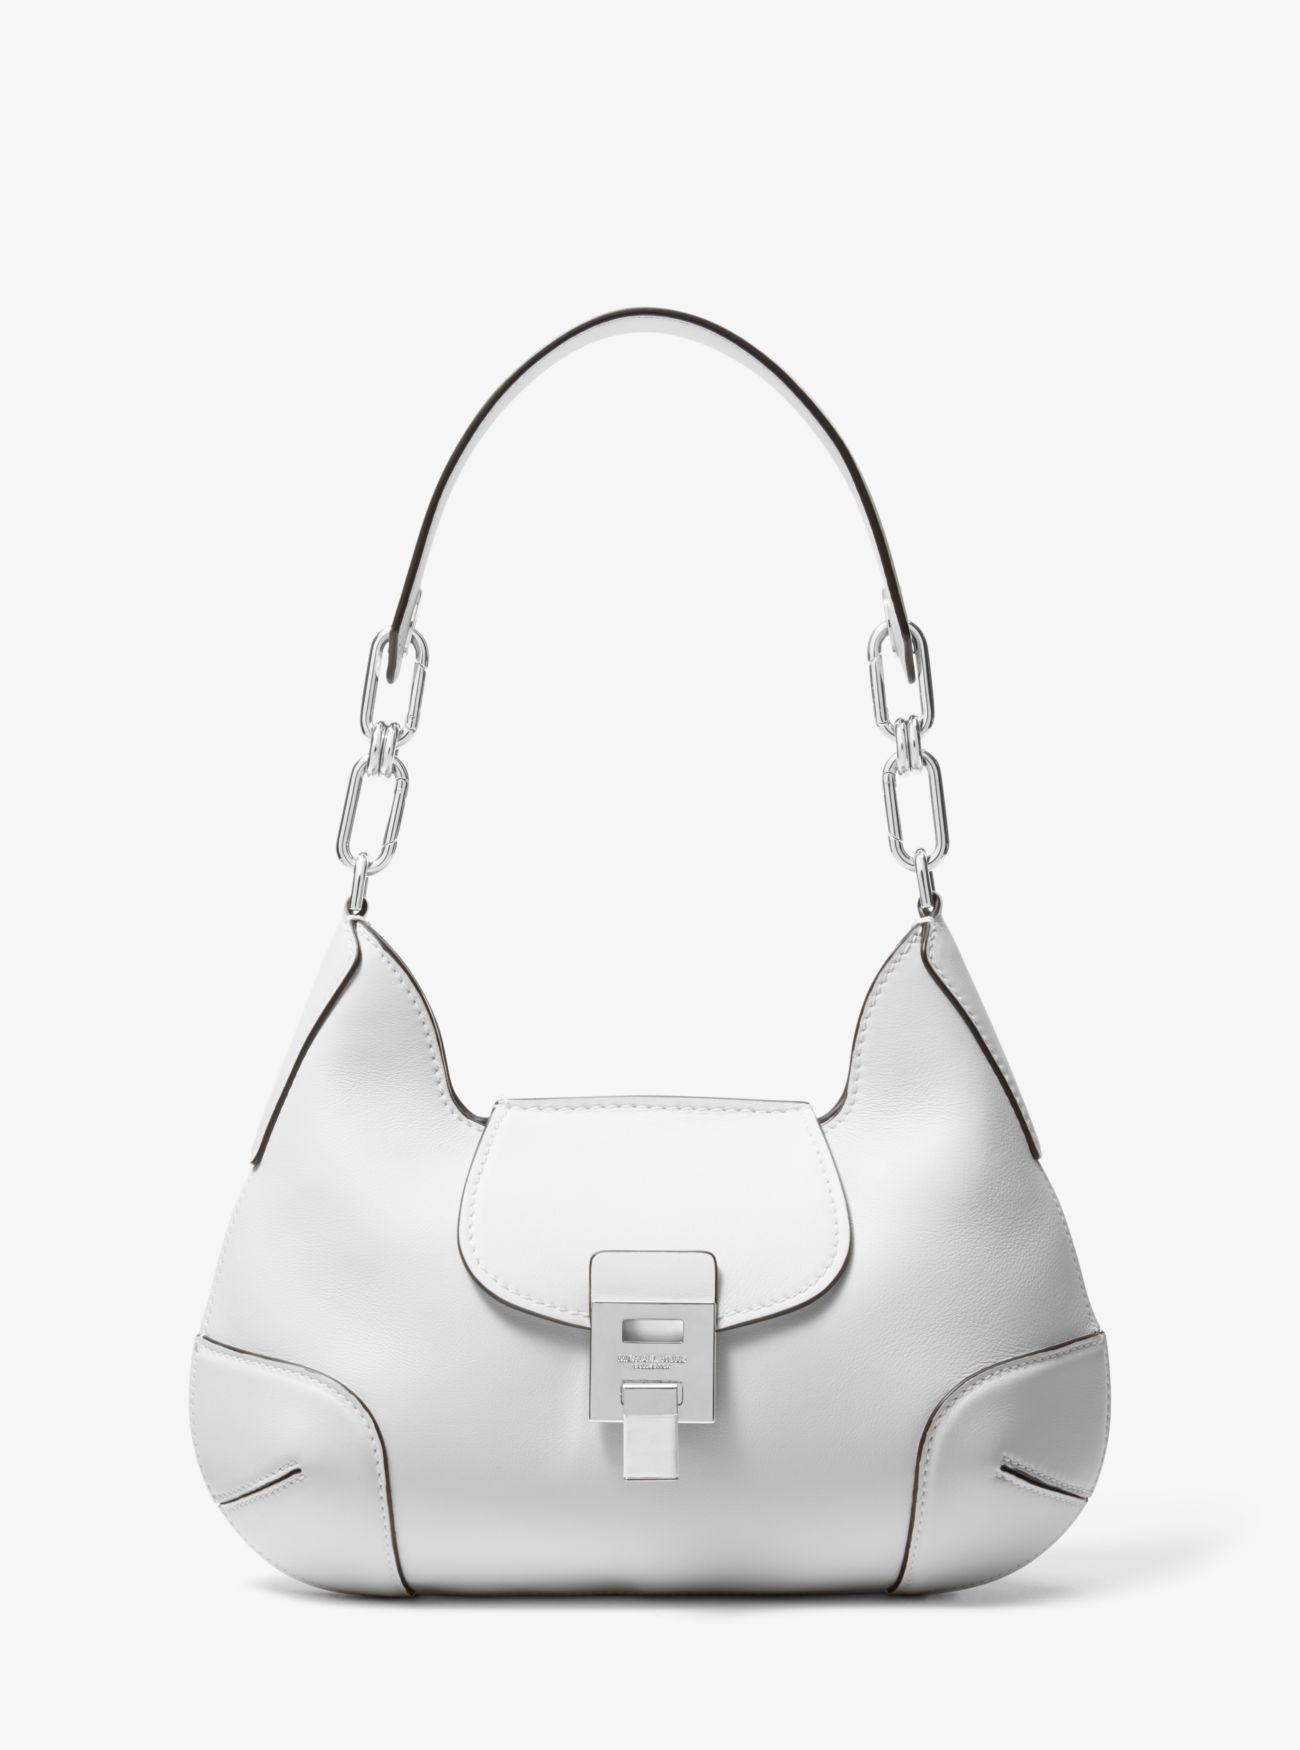 f1febc5371ca57 Michael Kors. Women's White Bancroft Medium Calf Leather Shoulder Bag